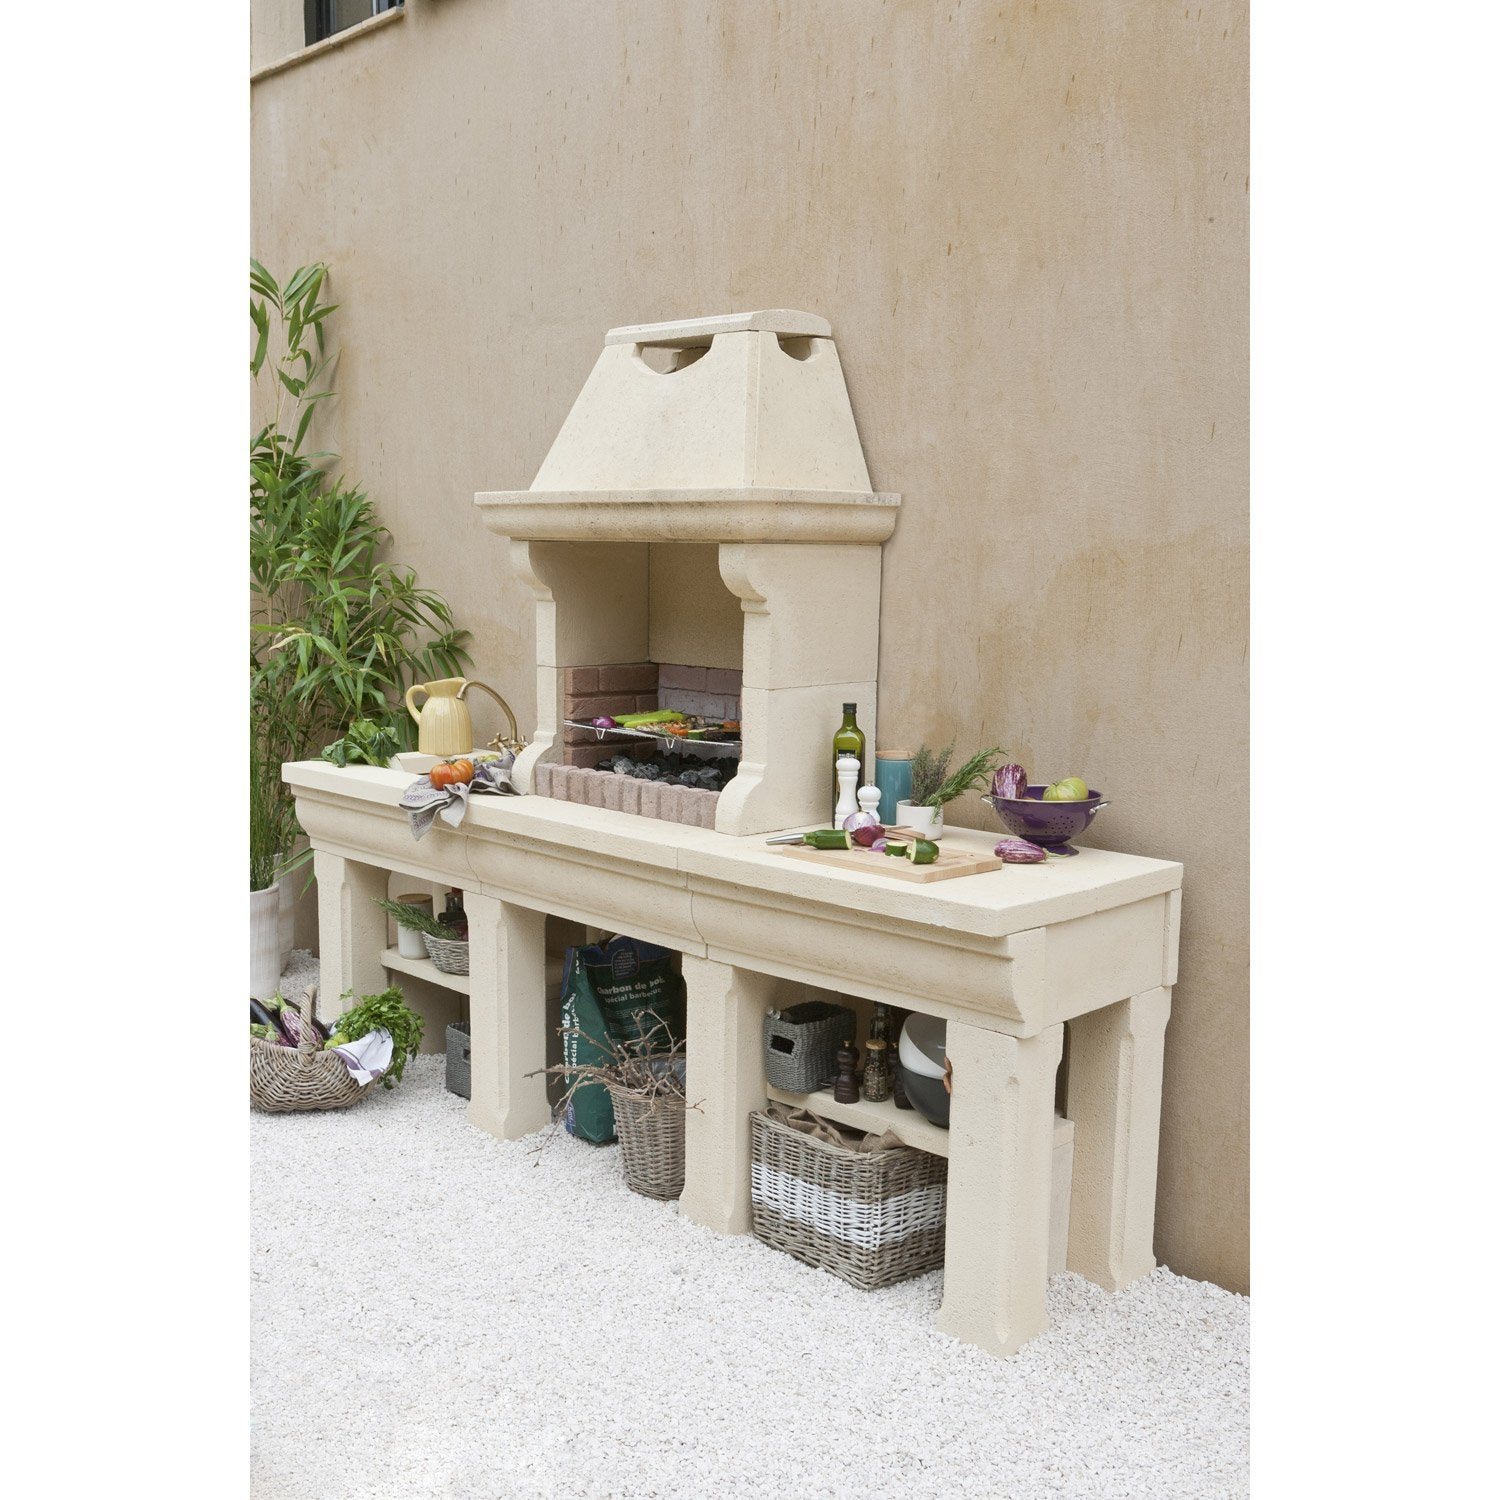 Barbecue en b ton beige touraine x x for Barbecue exterieur en pierre